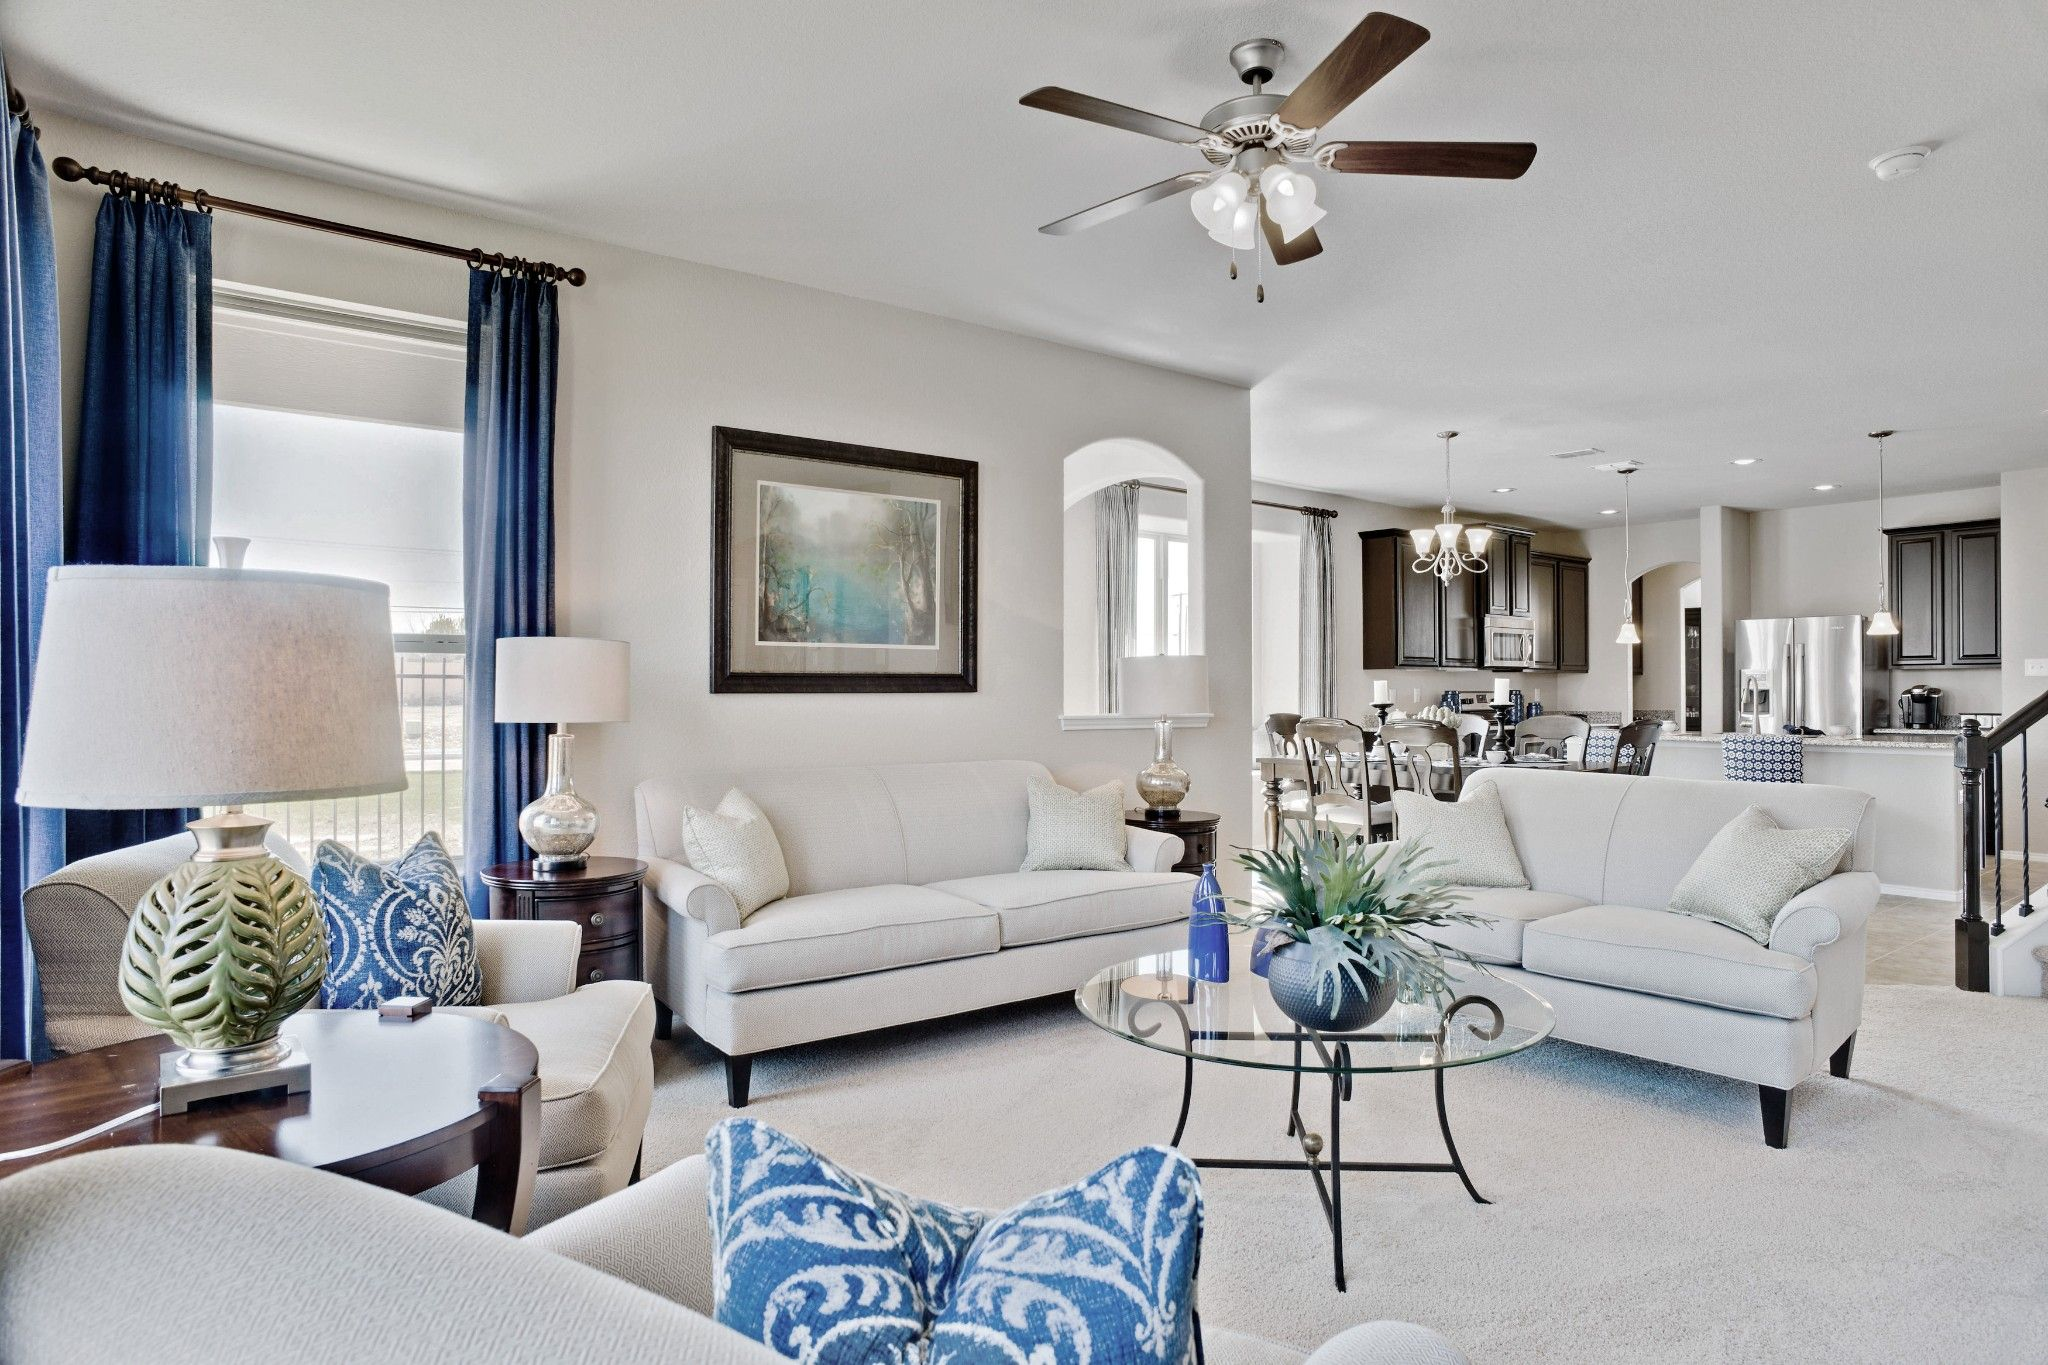 'Lake Vista Ranch' by HistoryMaker Homes in Fort Worth